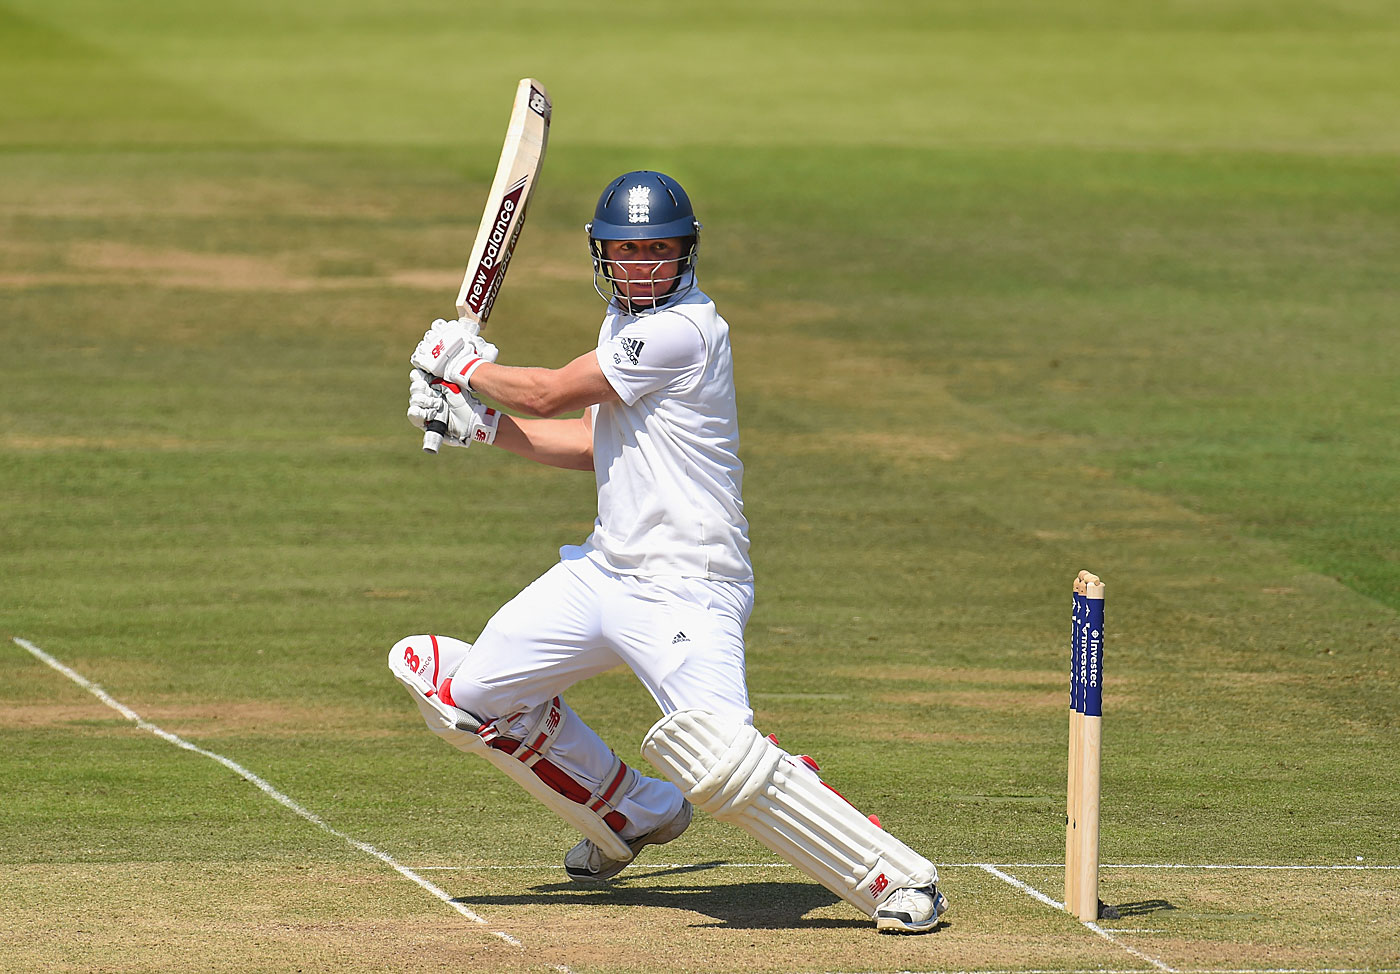 The bat says it all: Gary Ballance's strong back-foot play as a youngster set him apart from the other boys at school